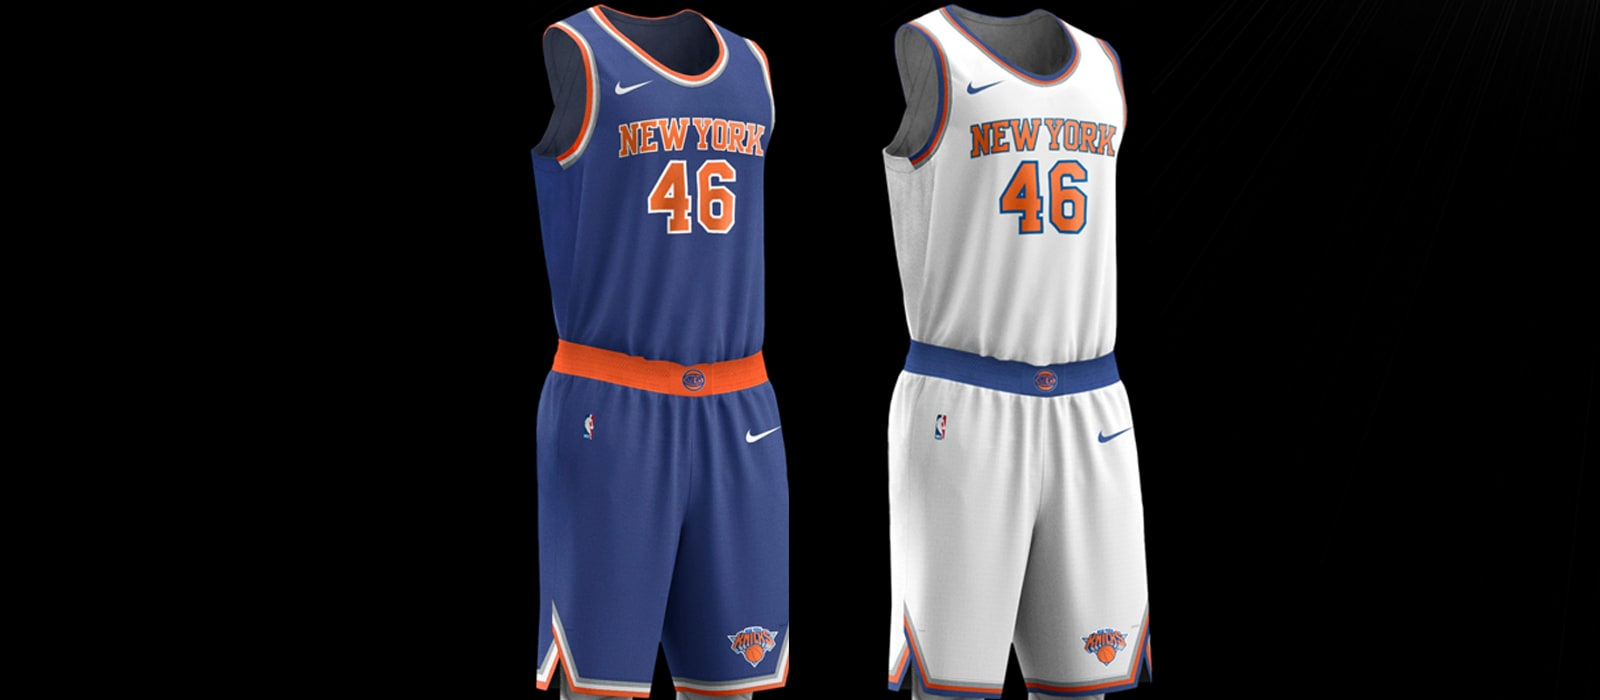 12c29dd0a Nike s Statement uniforms will have NBA fans talking this season